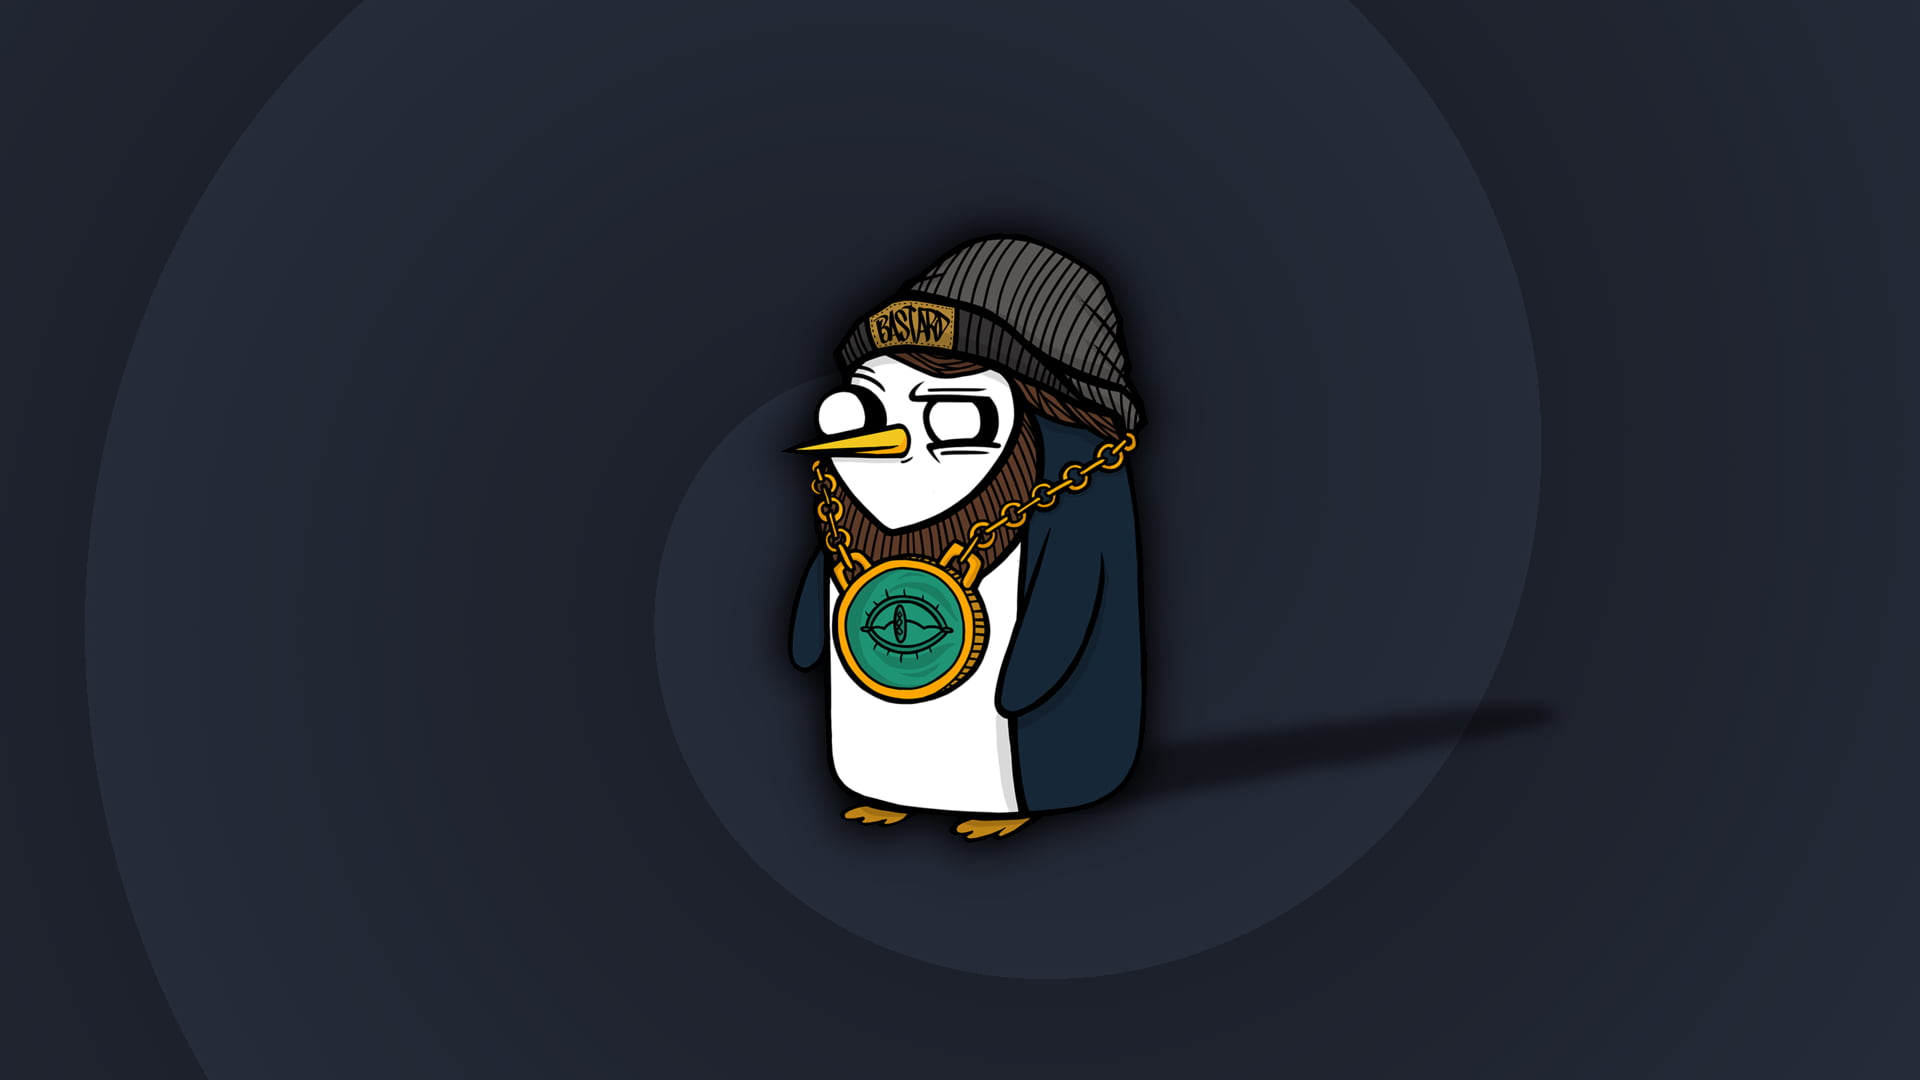 Penguin with bling and knit cap illustration HD wallpaper 1920x1080